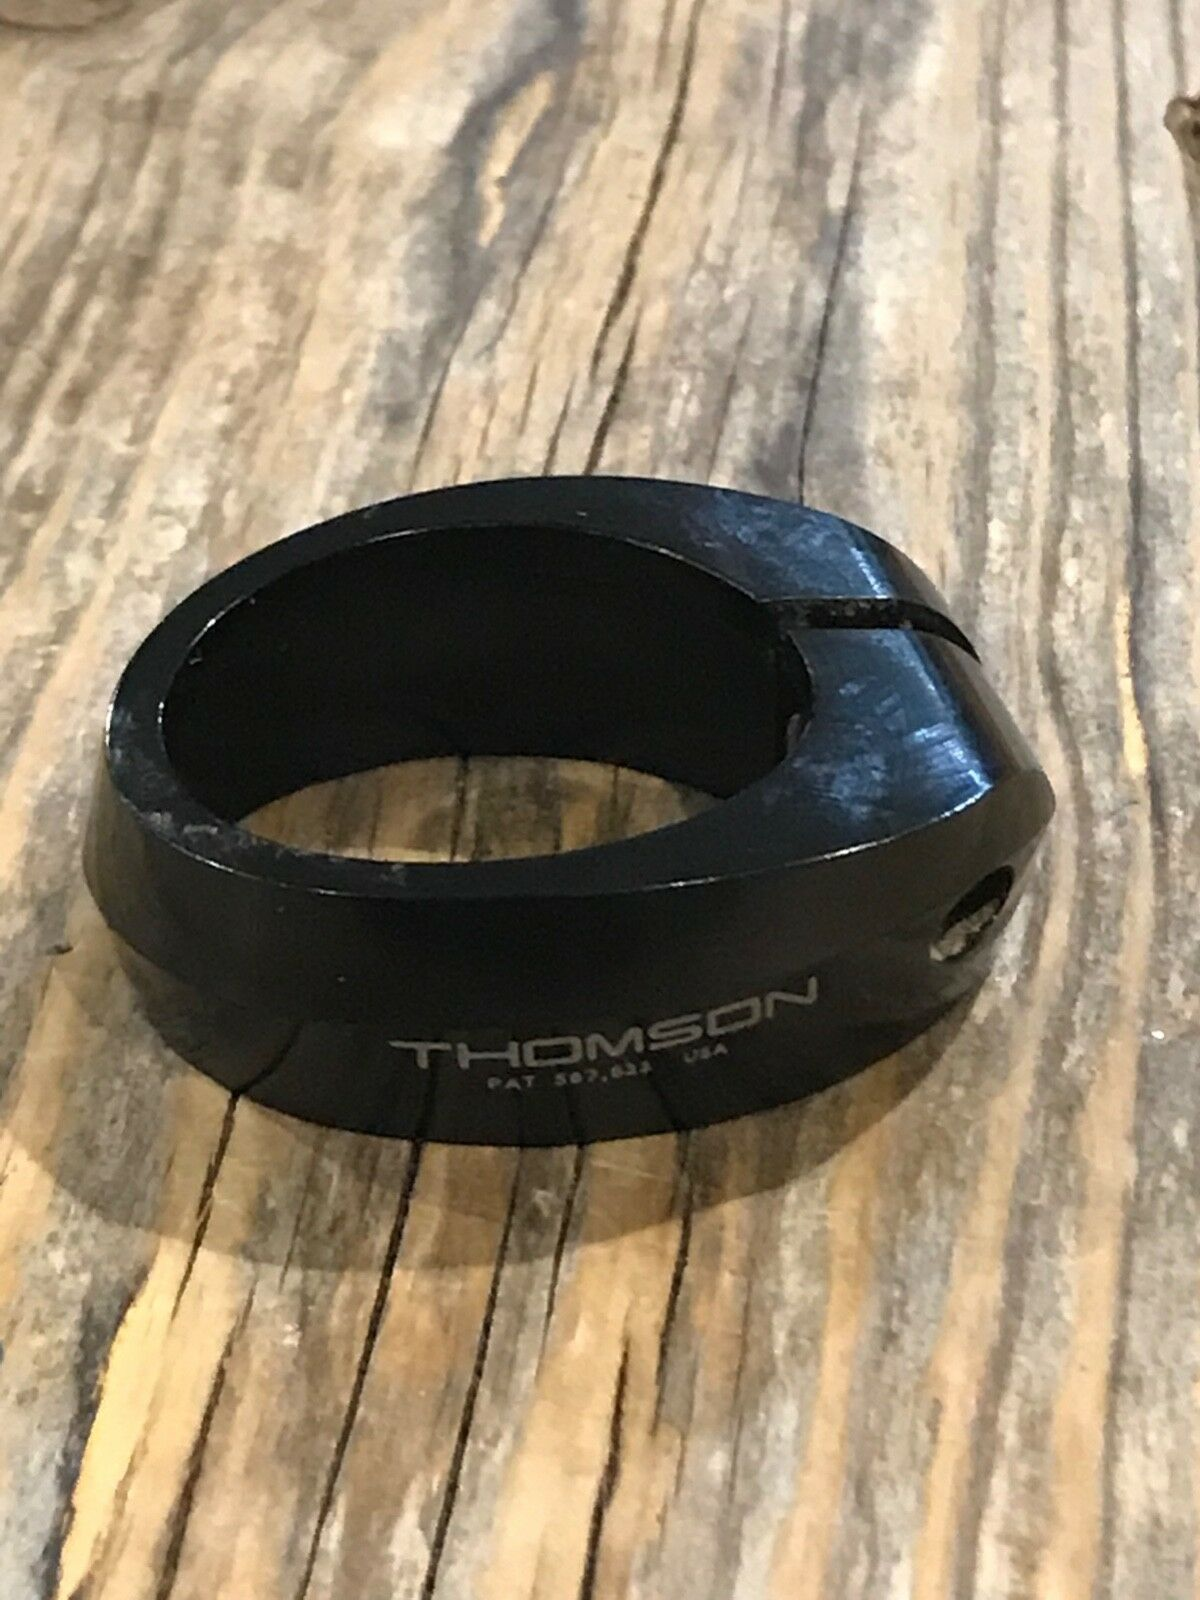 2018 Thomson Seat Post Collar 36.4